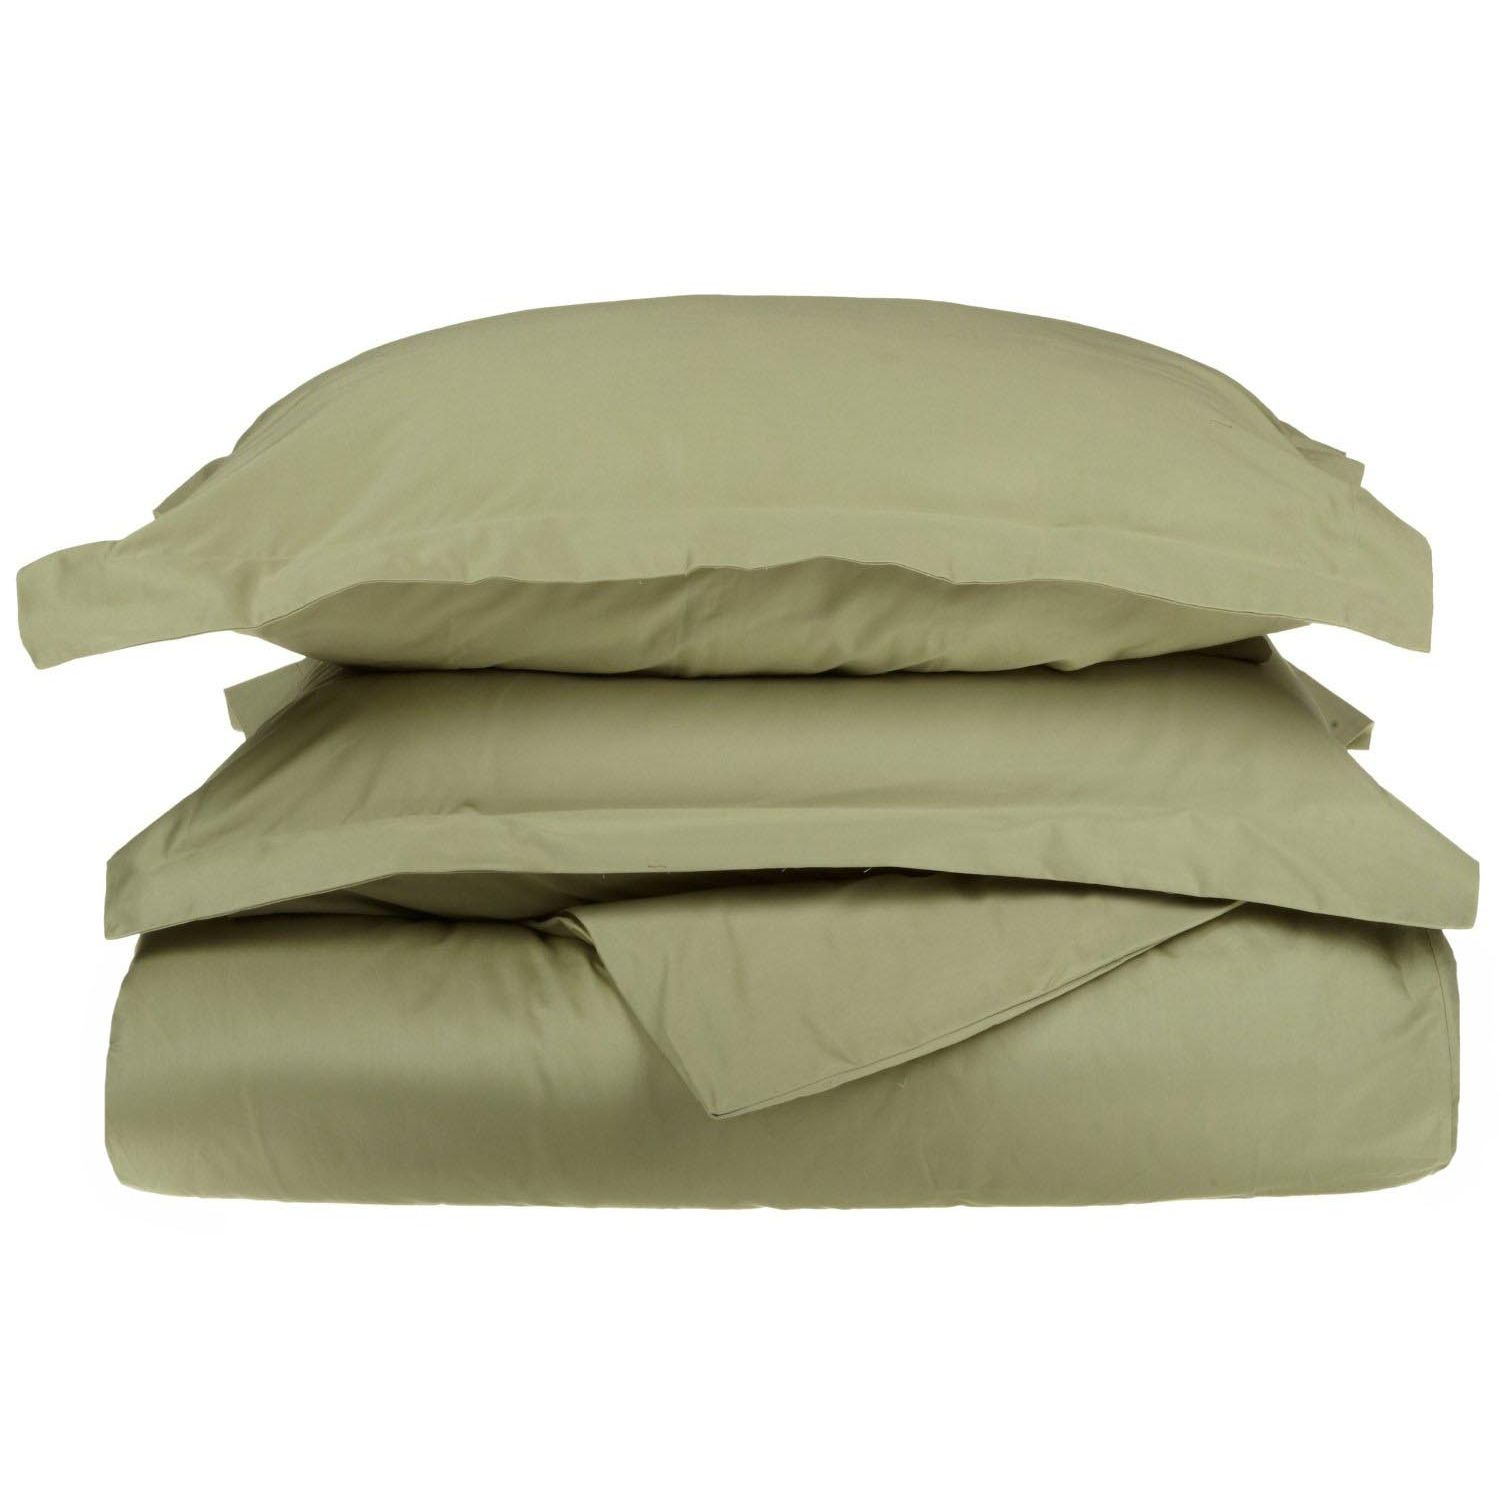 Superior 1200 Thread Count Single-Ply Egyptian Cotton Solid Duvet Cover Set